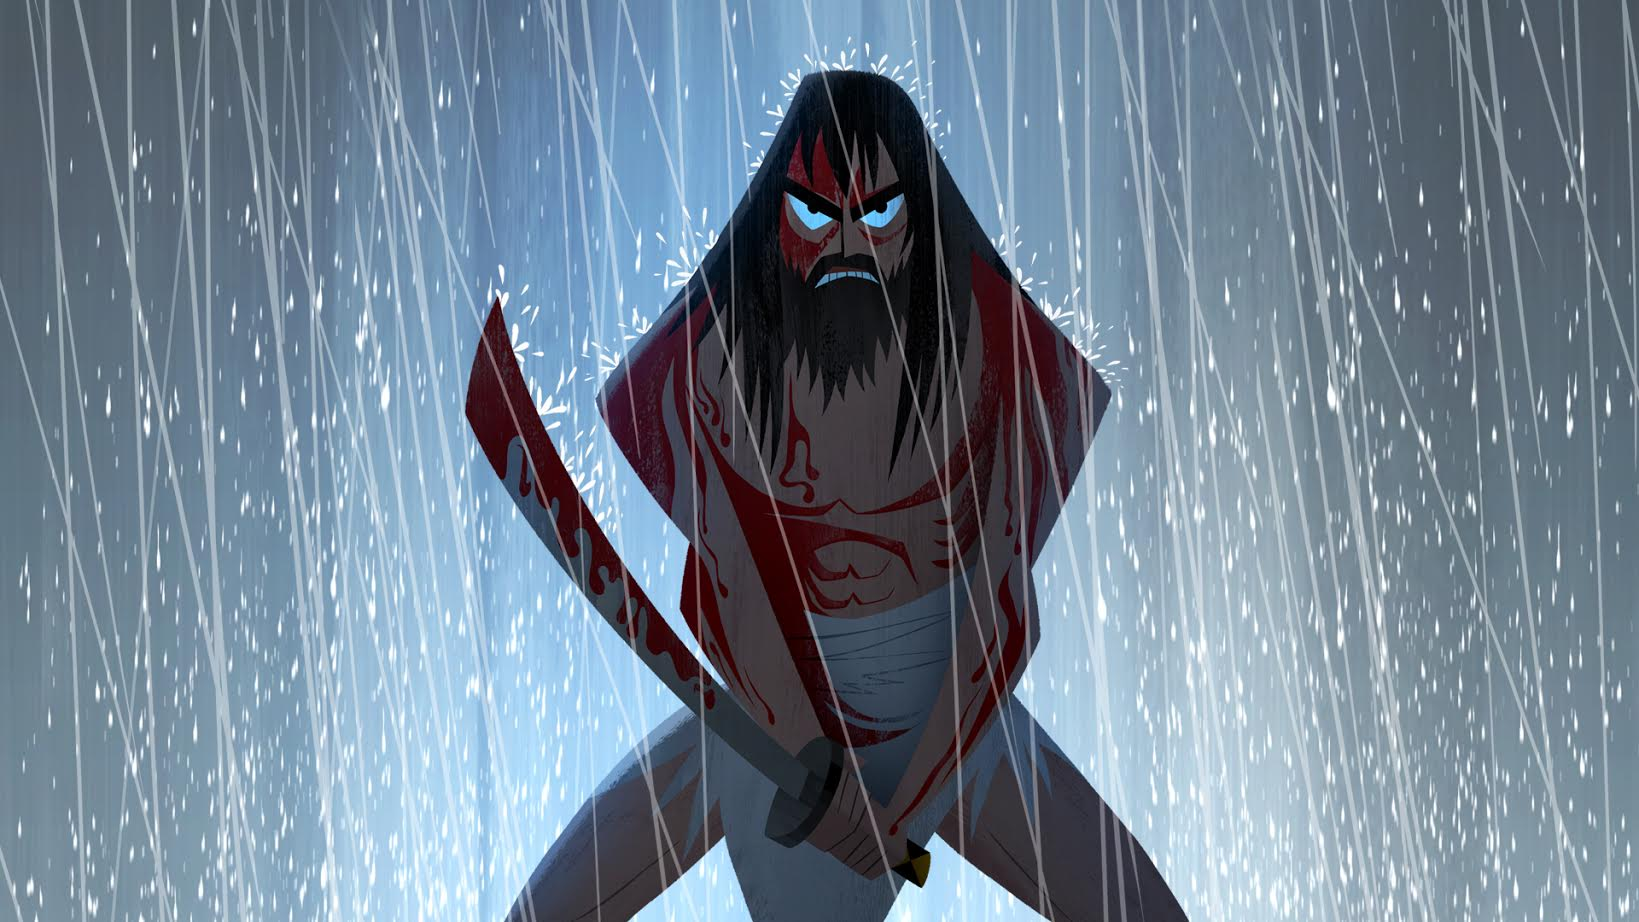 Samurai Jack The Premiere Movie Coming To Theaters On Oct 16